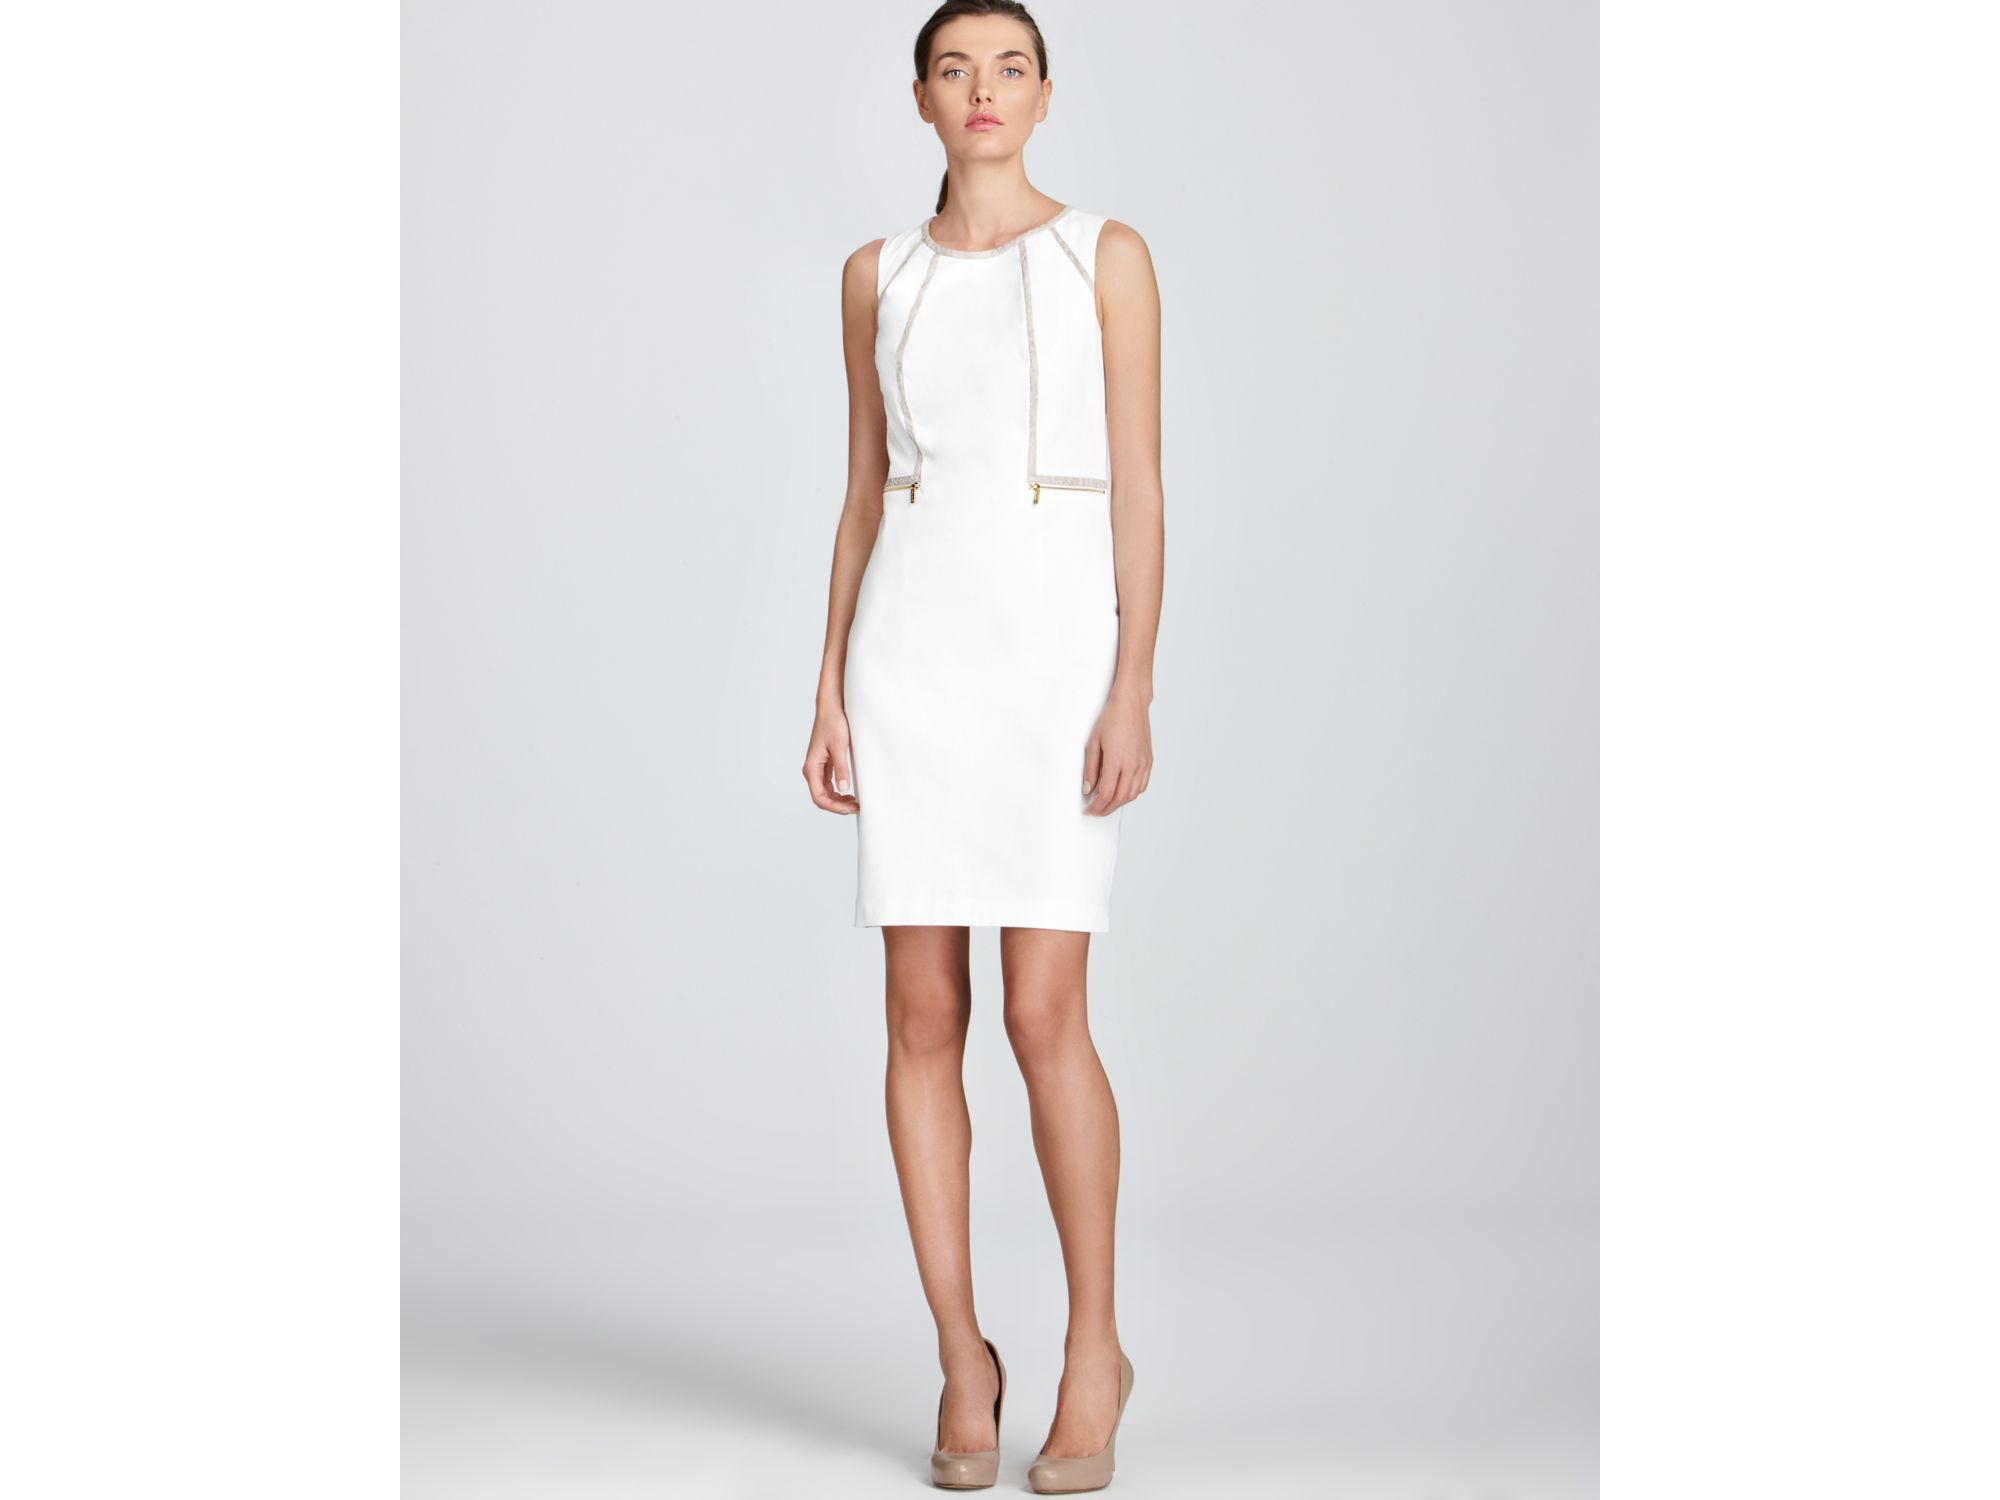 6f3ac6dbcc496 Calvin Klein White Dress - Dress Foto and Picture